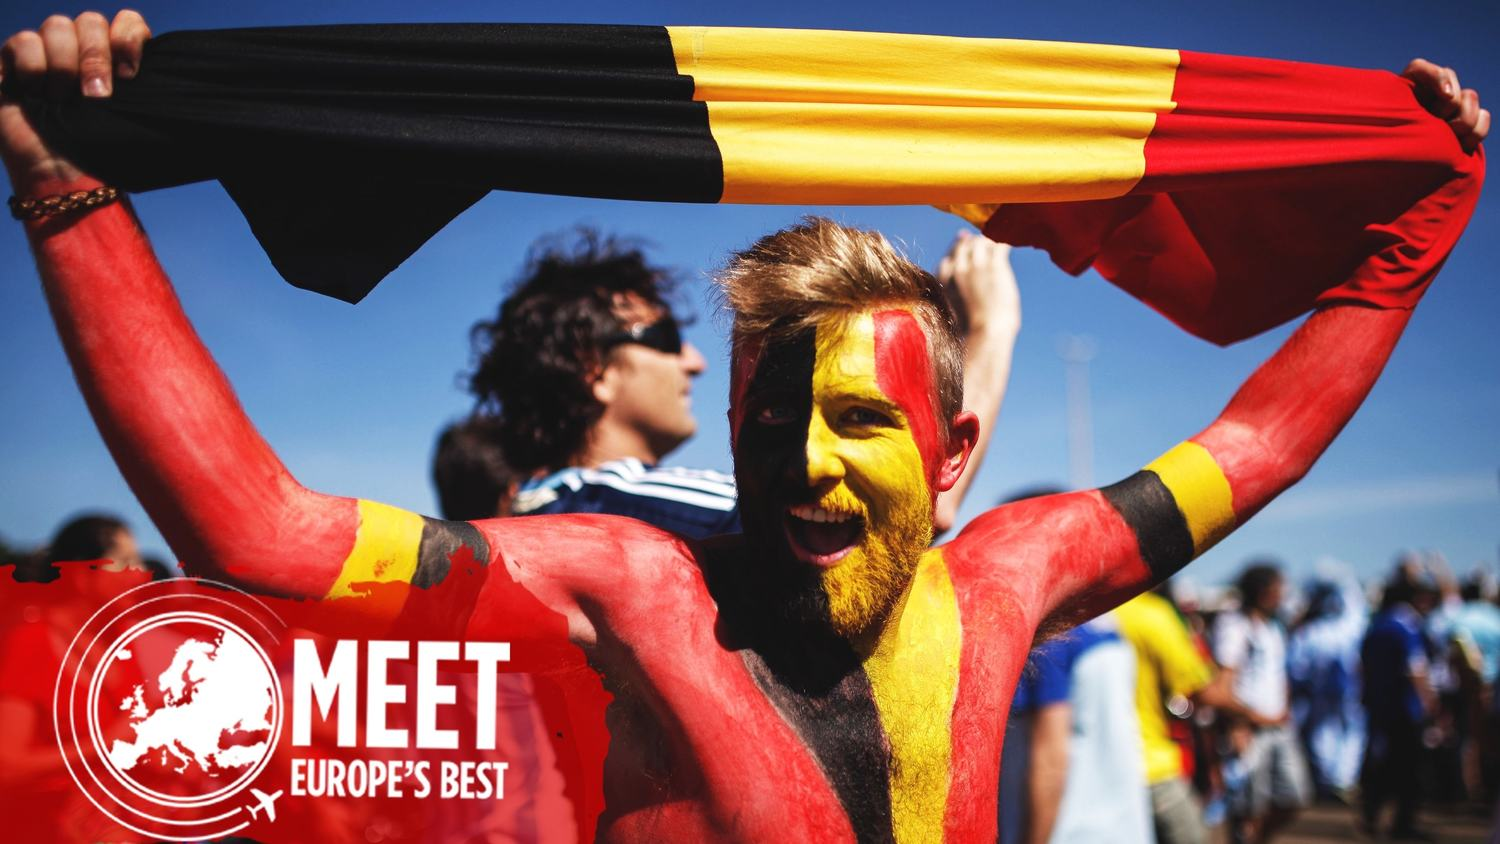 Where is the Party? Here is the Party! | Meet Europe's Best